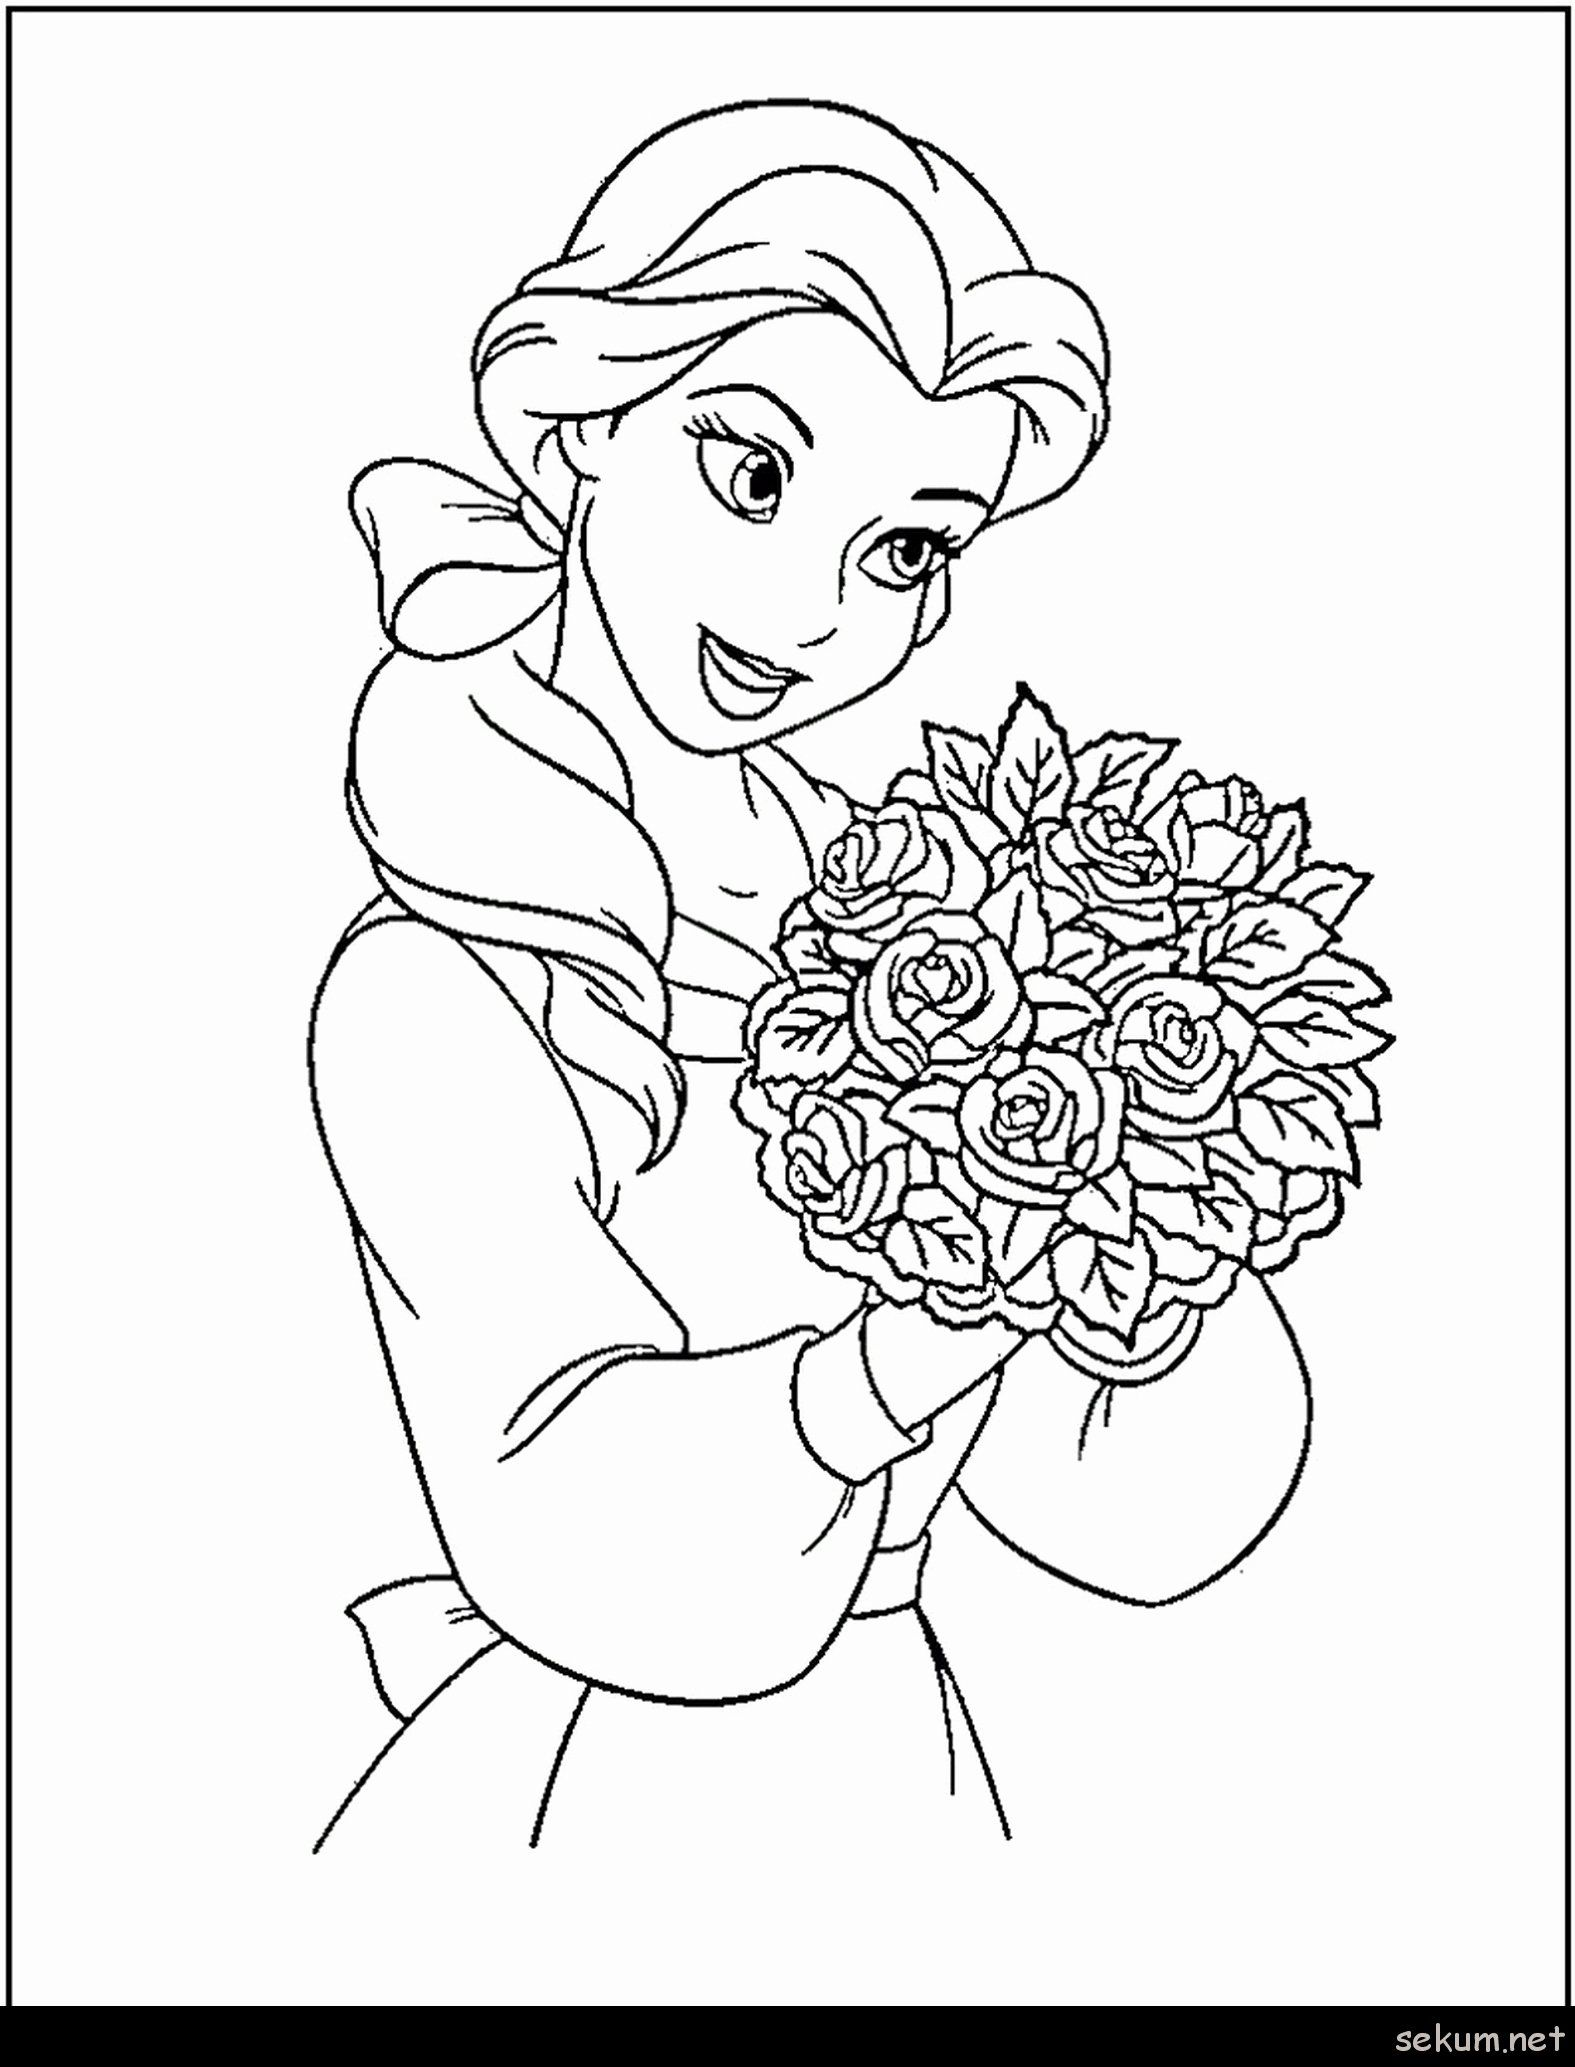 Print Coloring Pages Free Best Of Coloring Pages Free Printable Colouring Moana Disney Princess Coloring Pages Princess Coloring Pages Rapunzel Coloring Pages